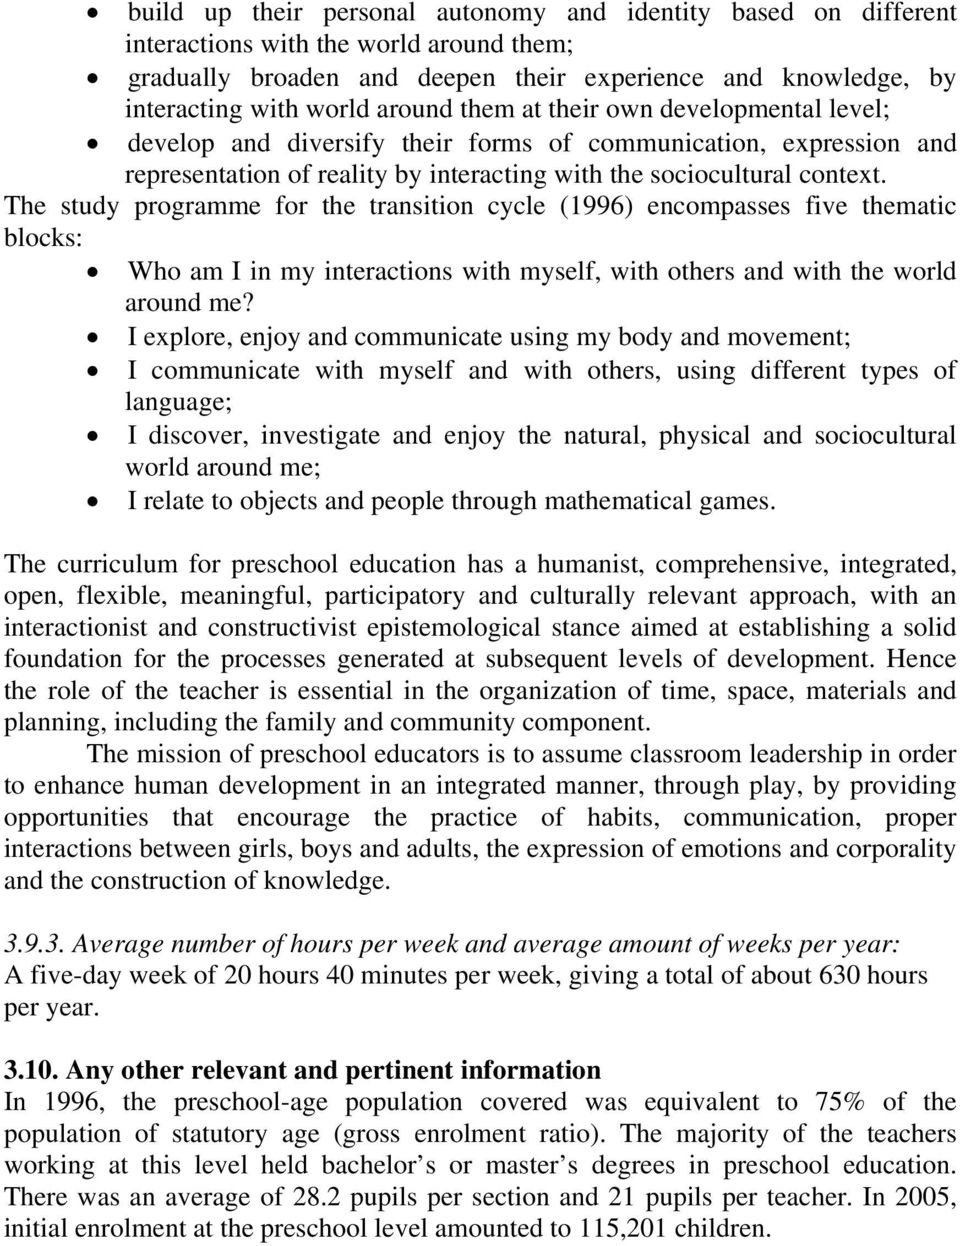 The study programme for the transition cycle (1996) encompasses five thematic blocks: Who am I in my interactions with myself, with others and with the world around me?